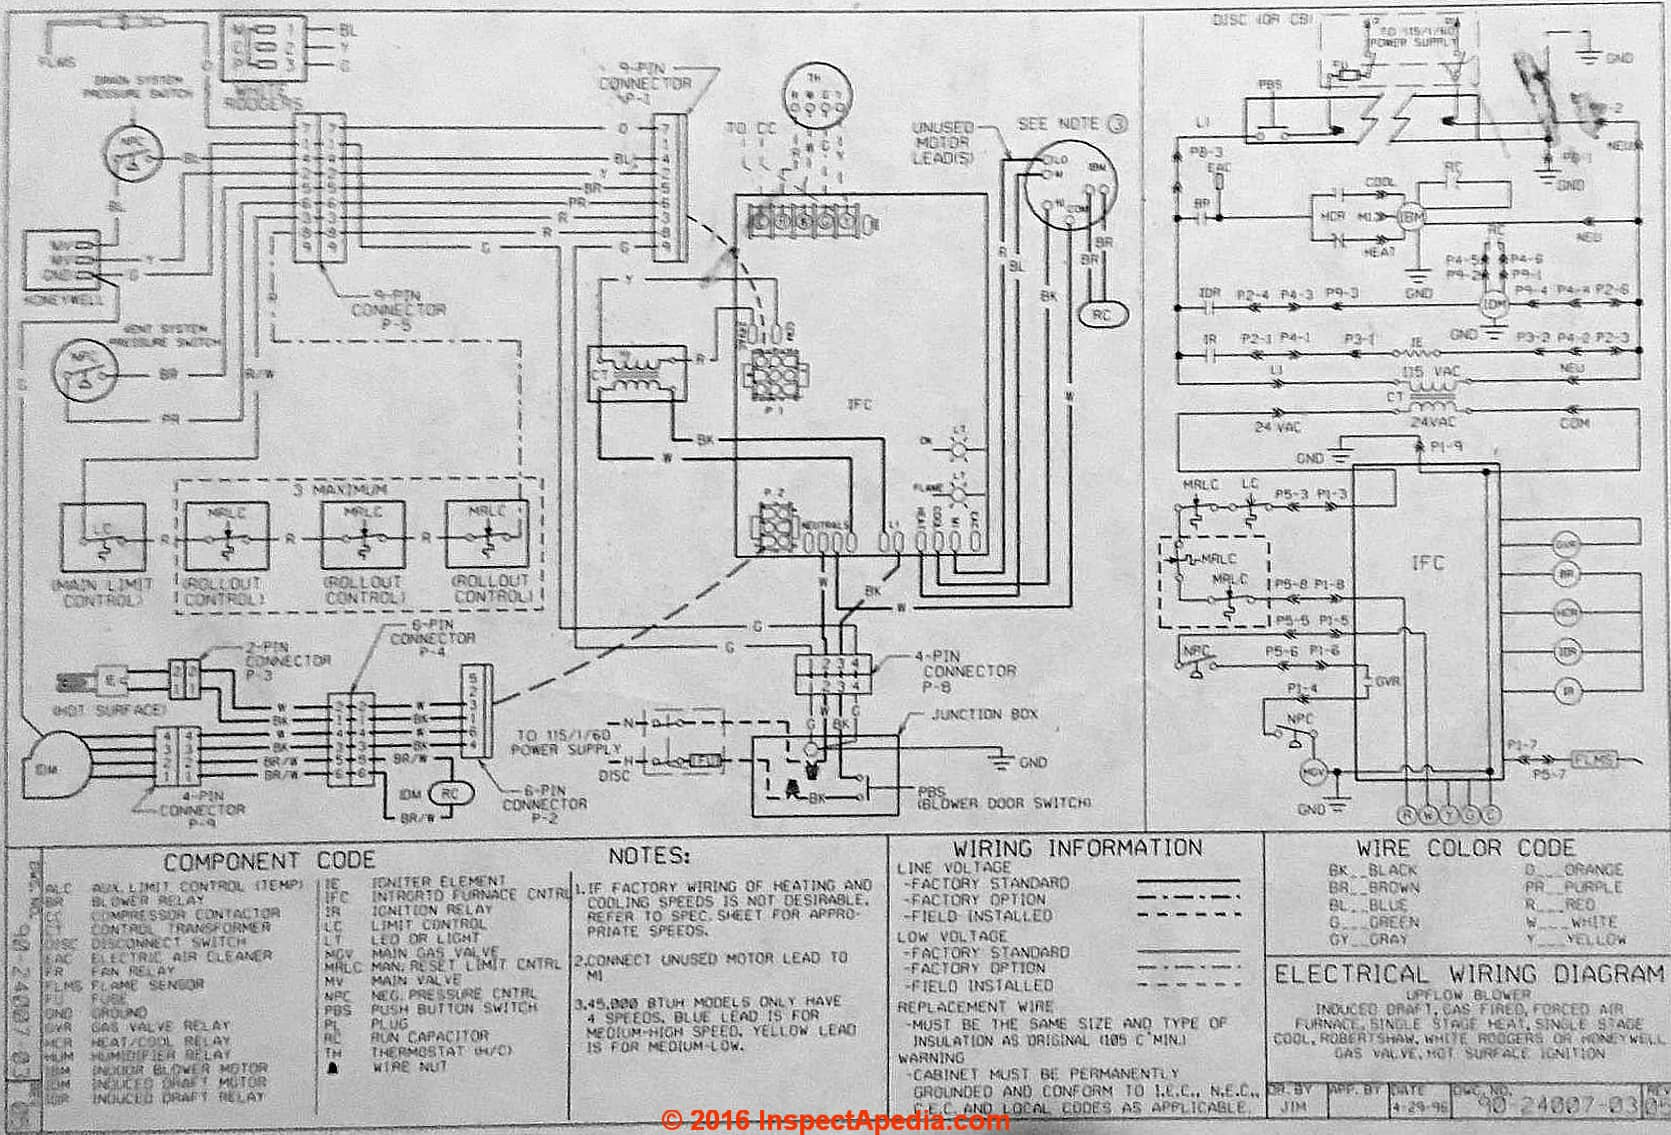 Pump furthermore Water Pump Wiring Diagram Single Phase in addition Gamewell Master Box Wiring Diagram moreover Technical information further Float Level Switch Wiring Diagram. on simplex pump wiring diagrams